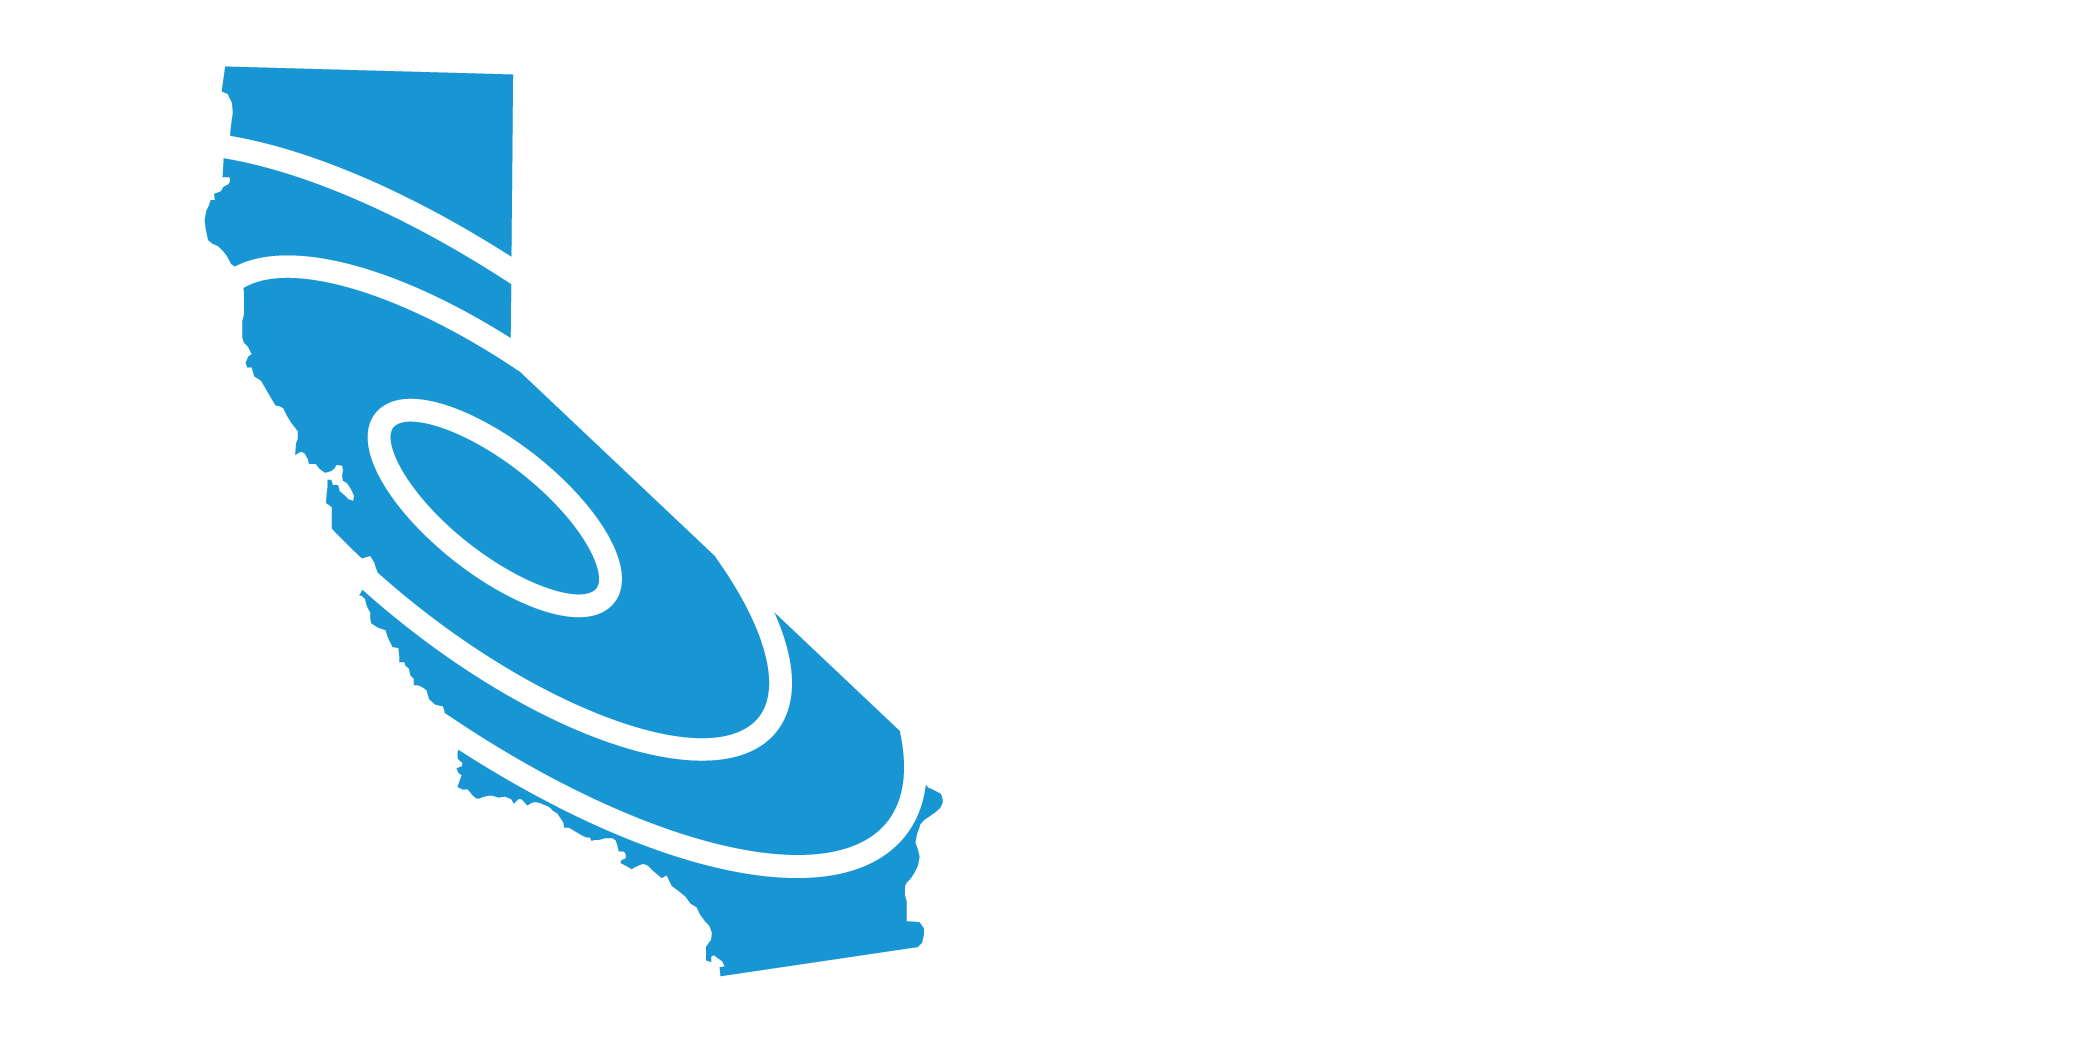 Earthquake Country Alliance Welcome To Earthquake Country